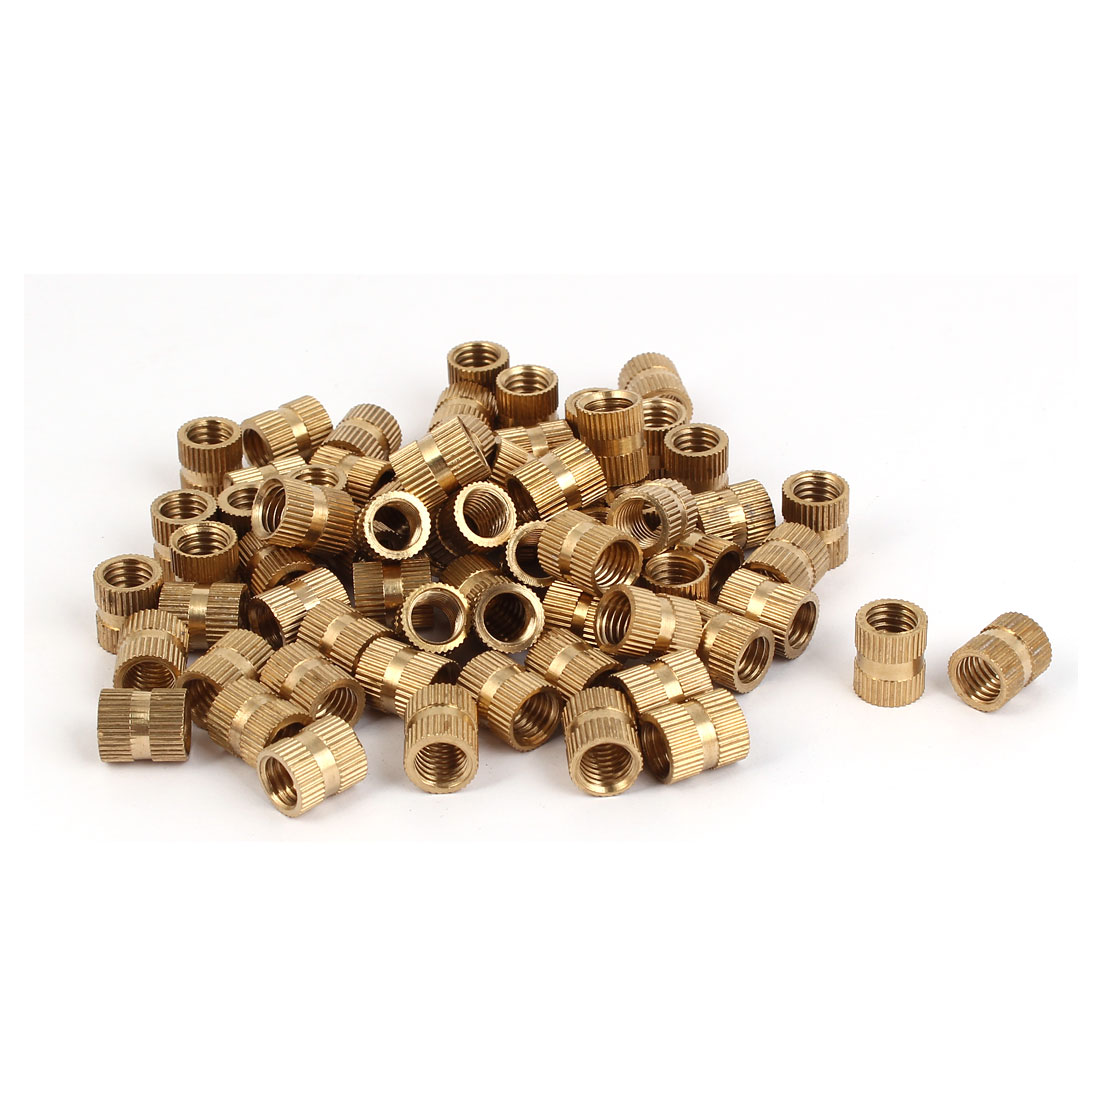 M8 x 12mm x 10mm Cylinder Brass Knurled Threaded Insert Embedment Nuts 100PCS